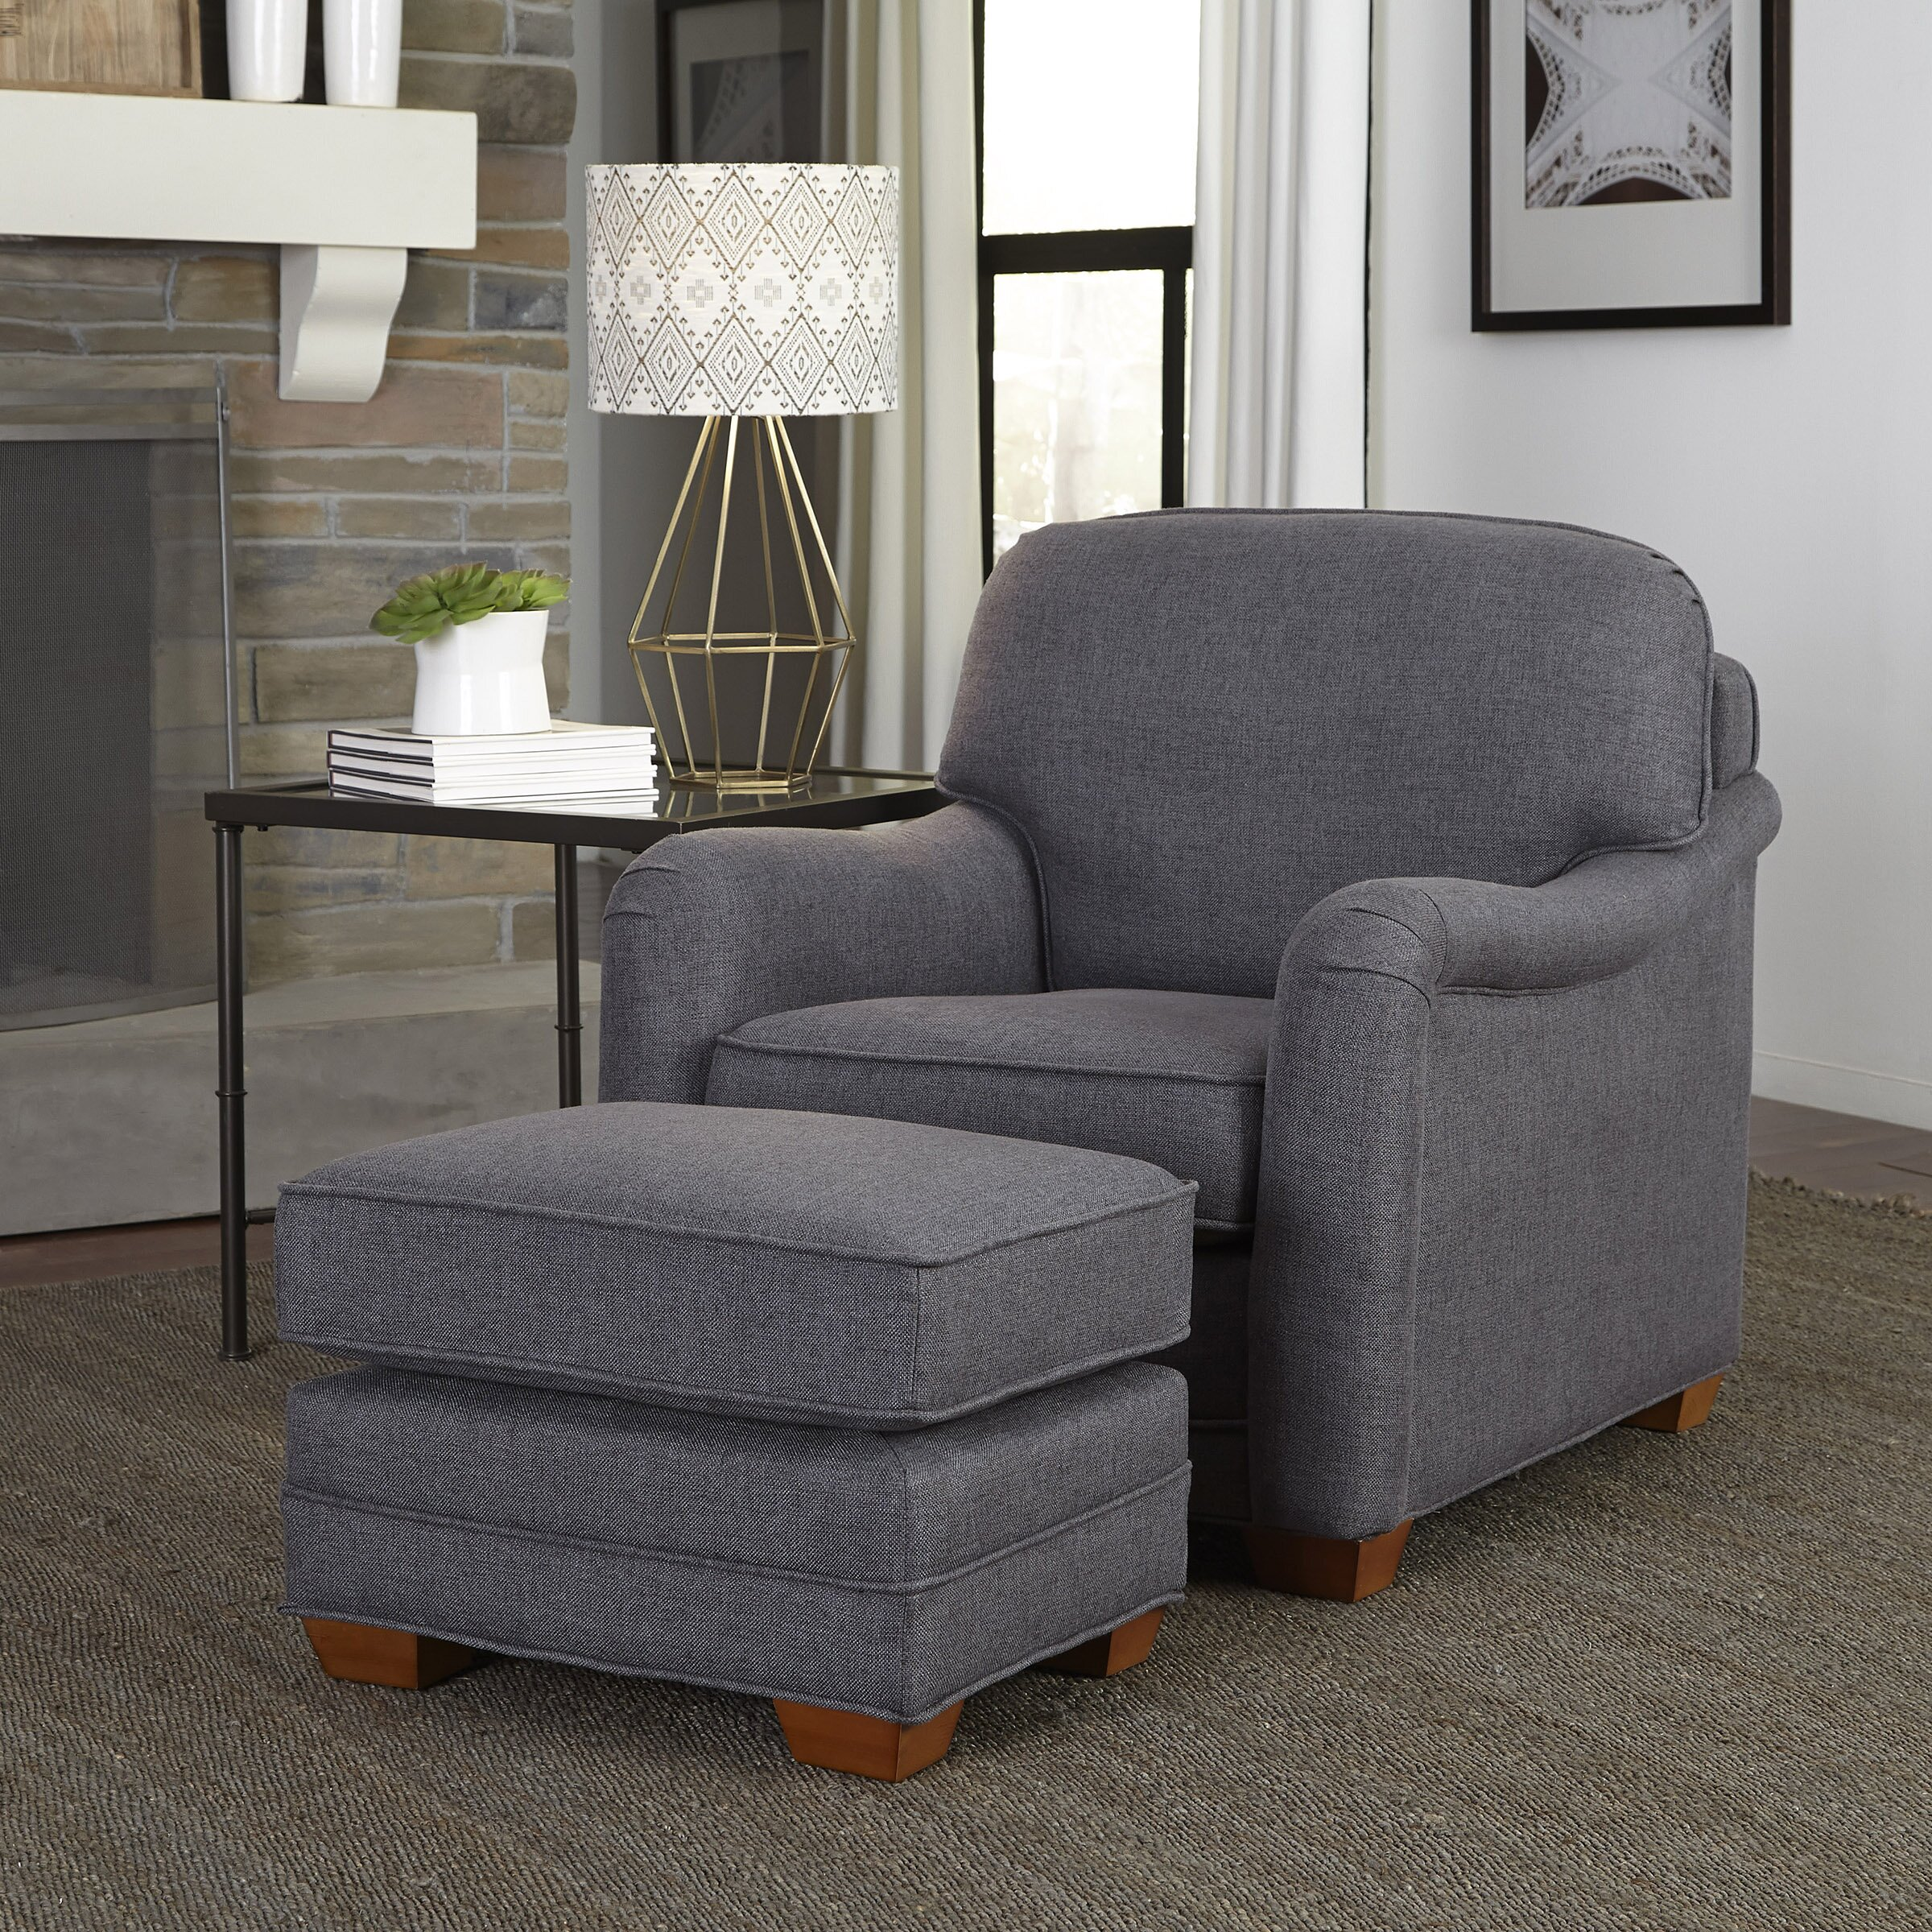 Accent Chair With Ottoman Cii: Stationary Arm Chair And Ottoman